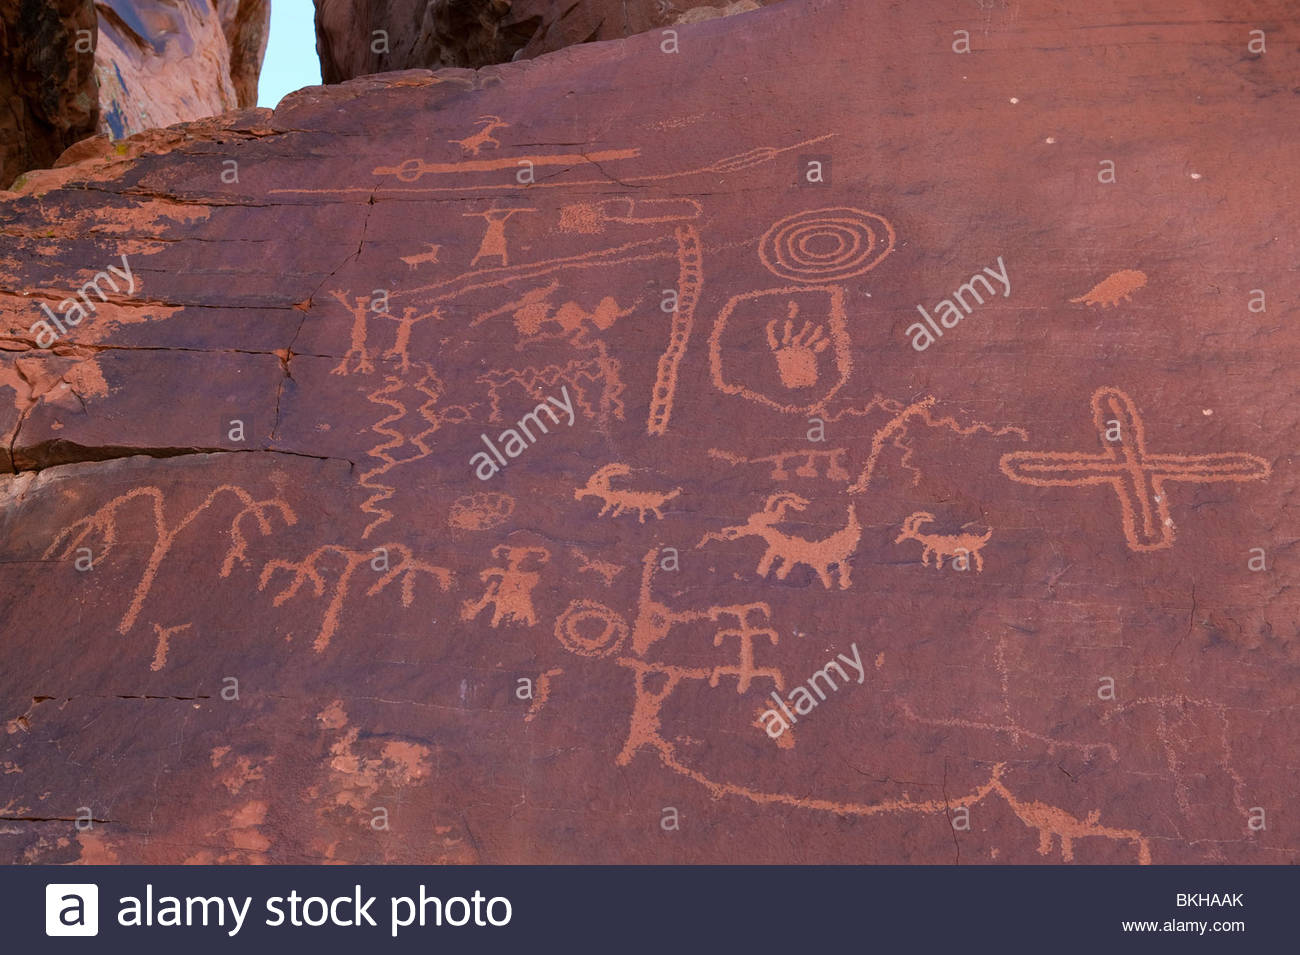 Ancient Anasazi petroglyphs cover a rock face, known as Atlatl Rock in the Valley of Fire State Park, Nevada. - Stock Image